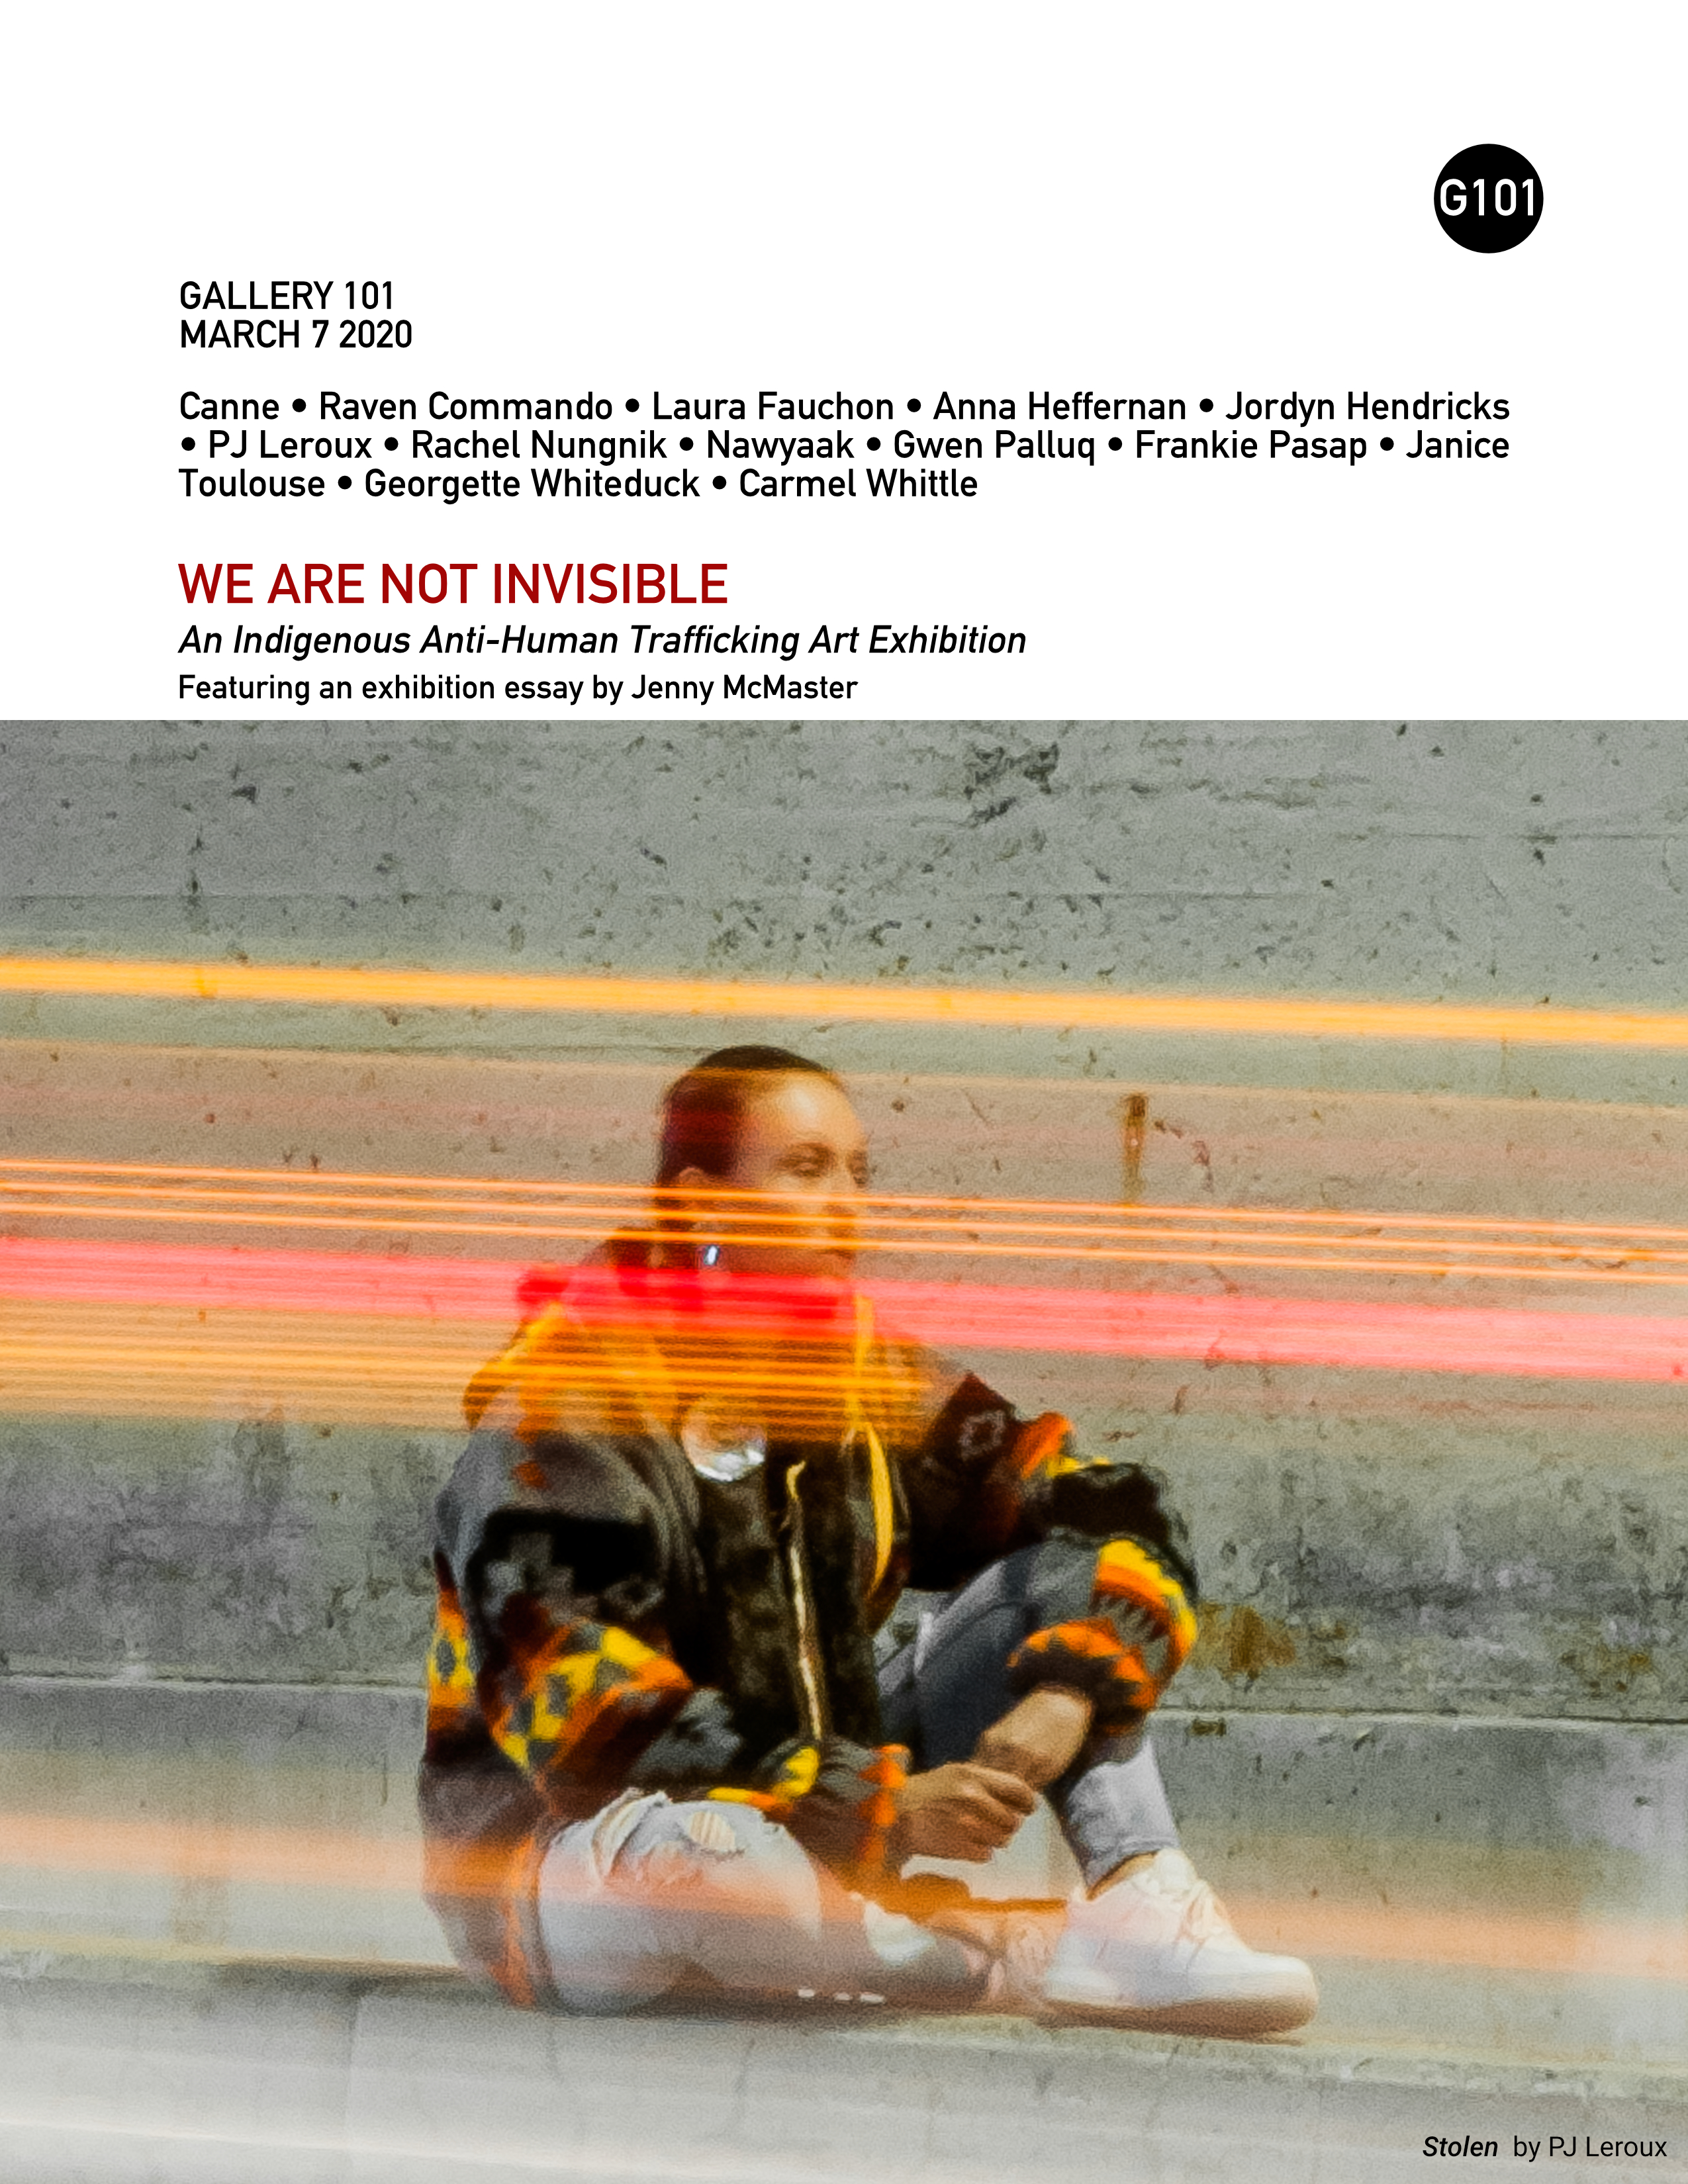 Cover of exhibiton catalog for We Are Not Invisible, featuring Stolen by PJ Leroux